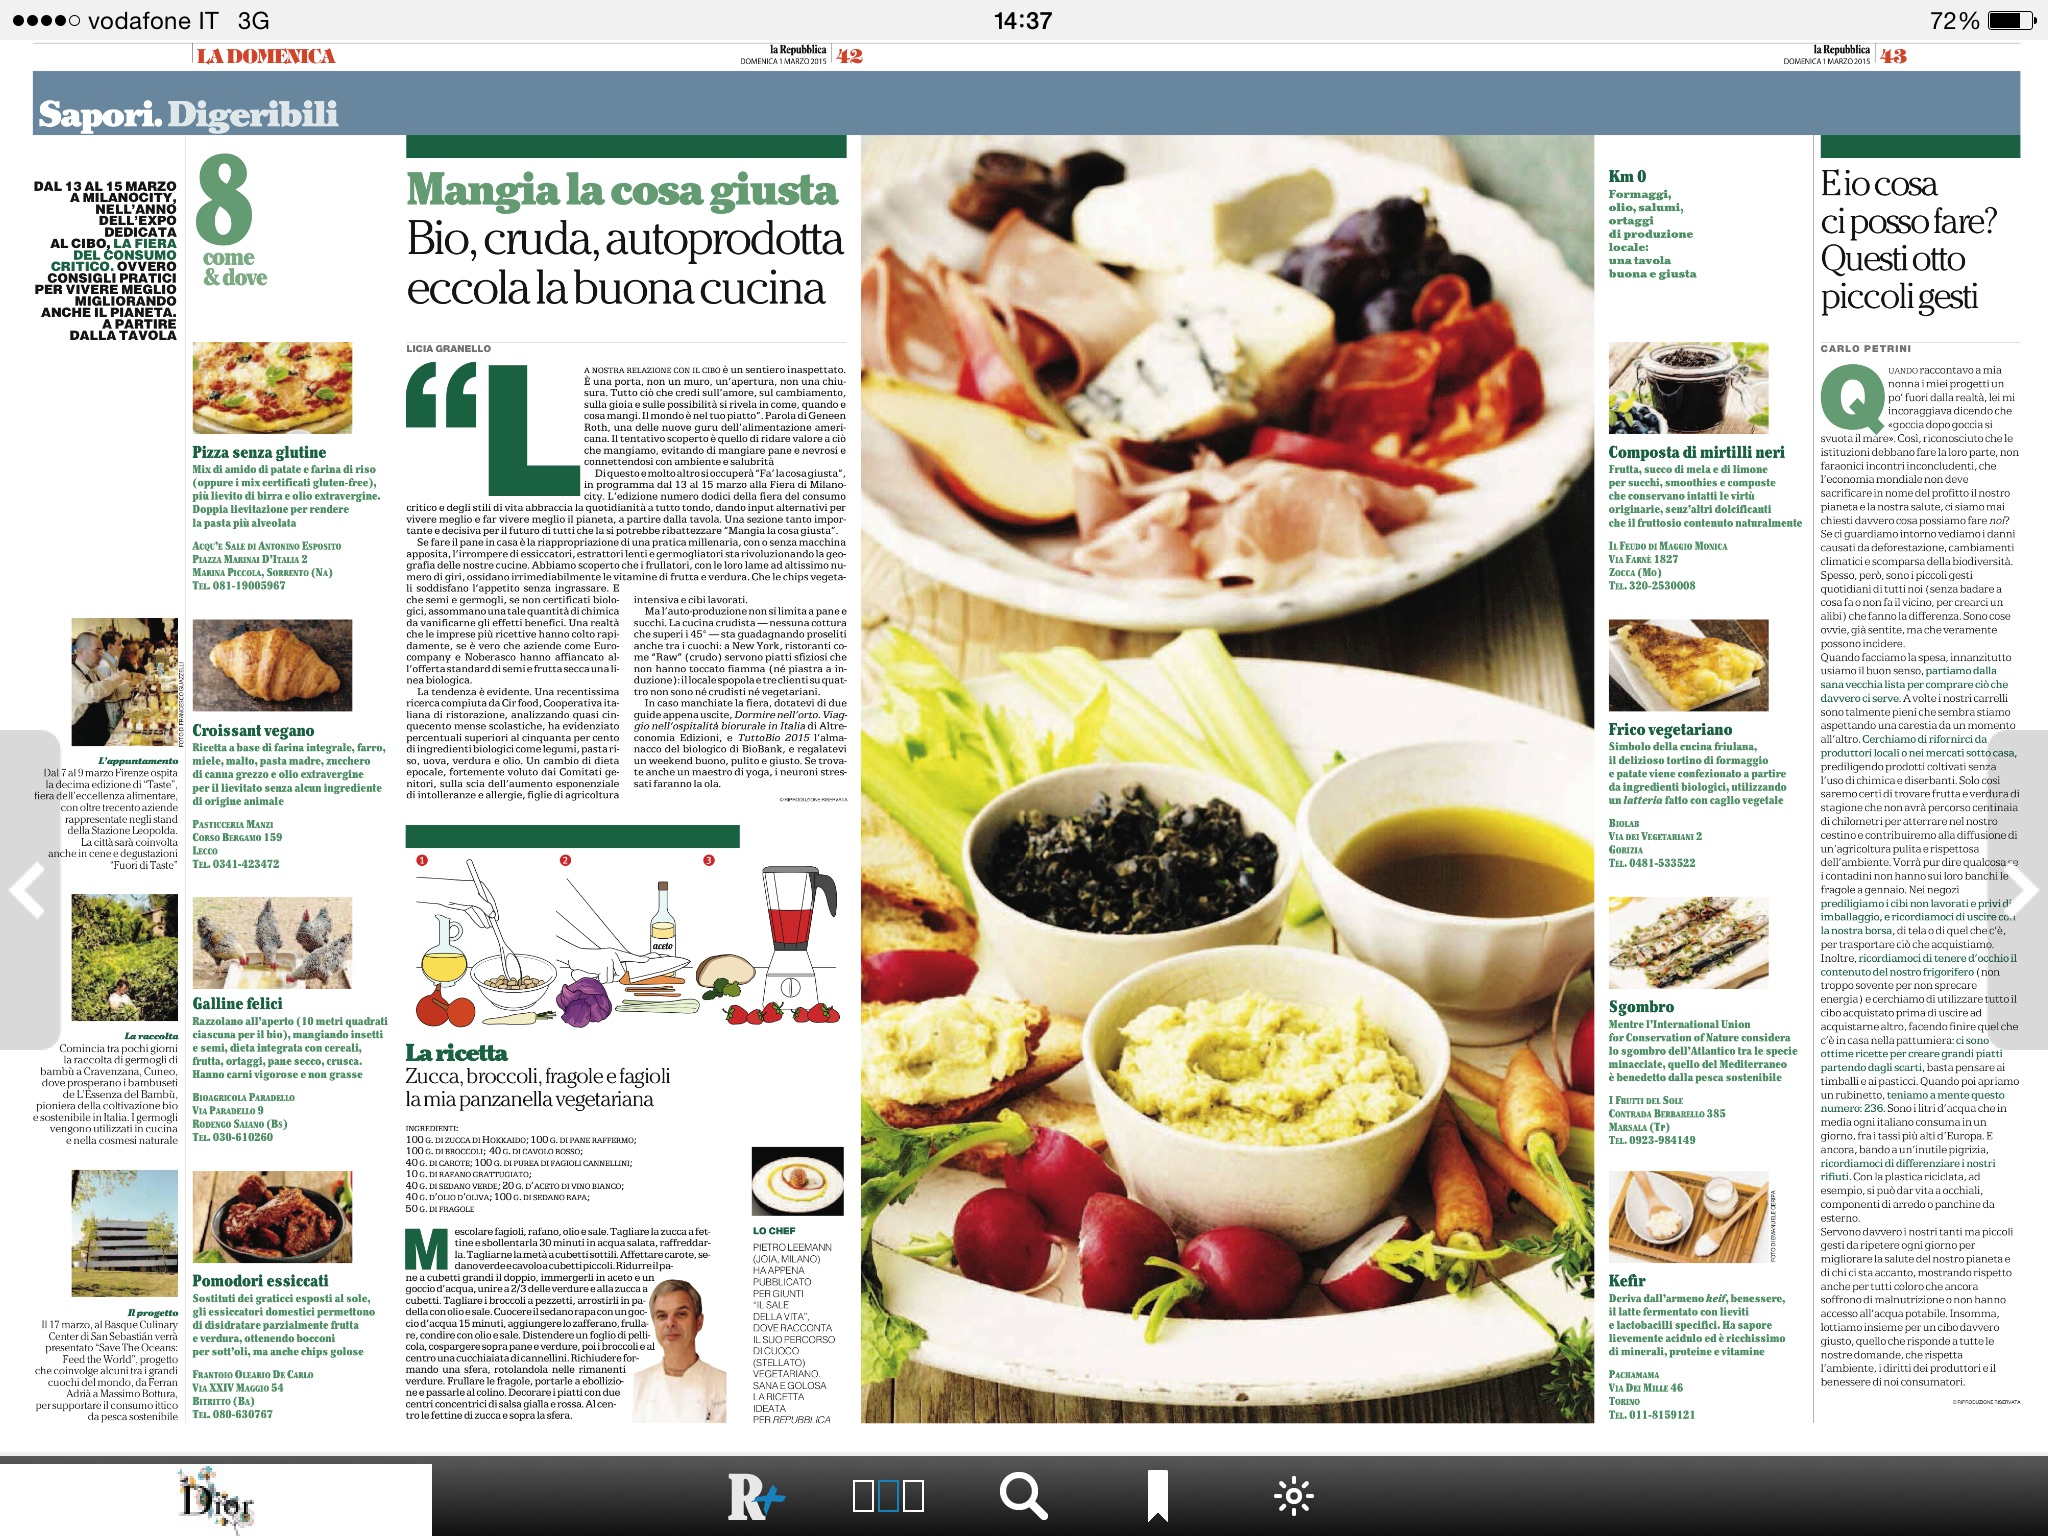 Voda.it/cucina Italiana Pane Nostrum Blog Repubblica It